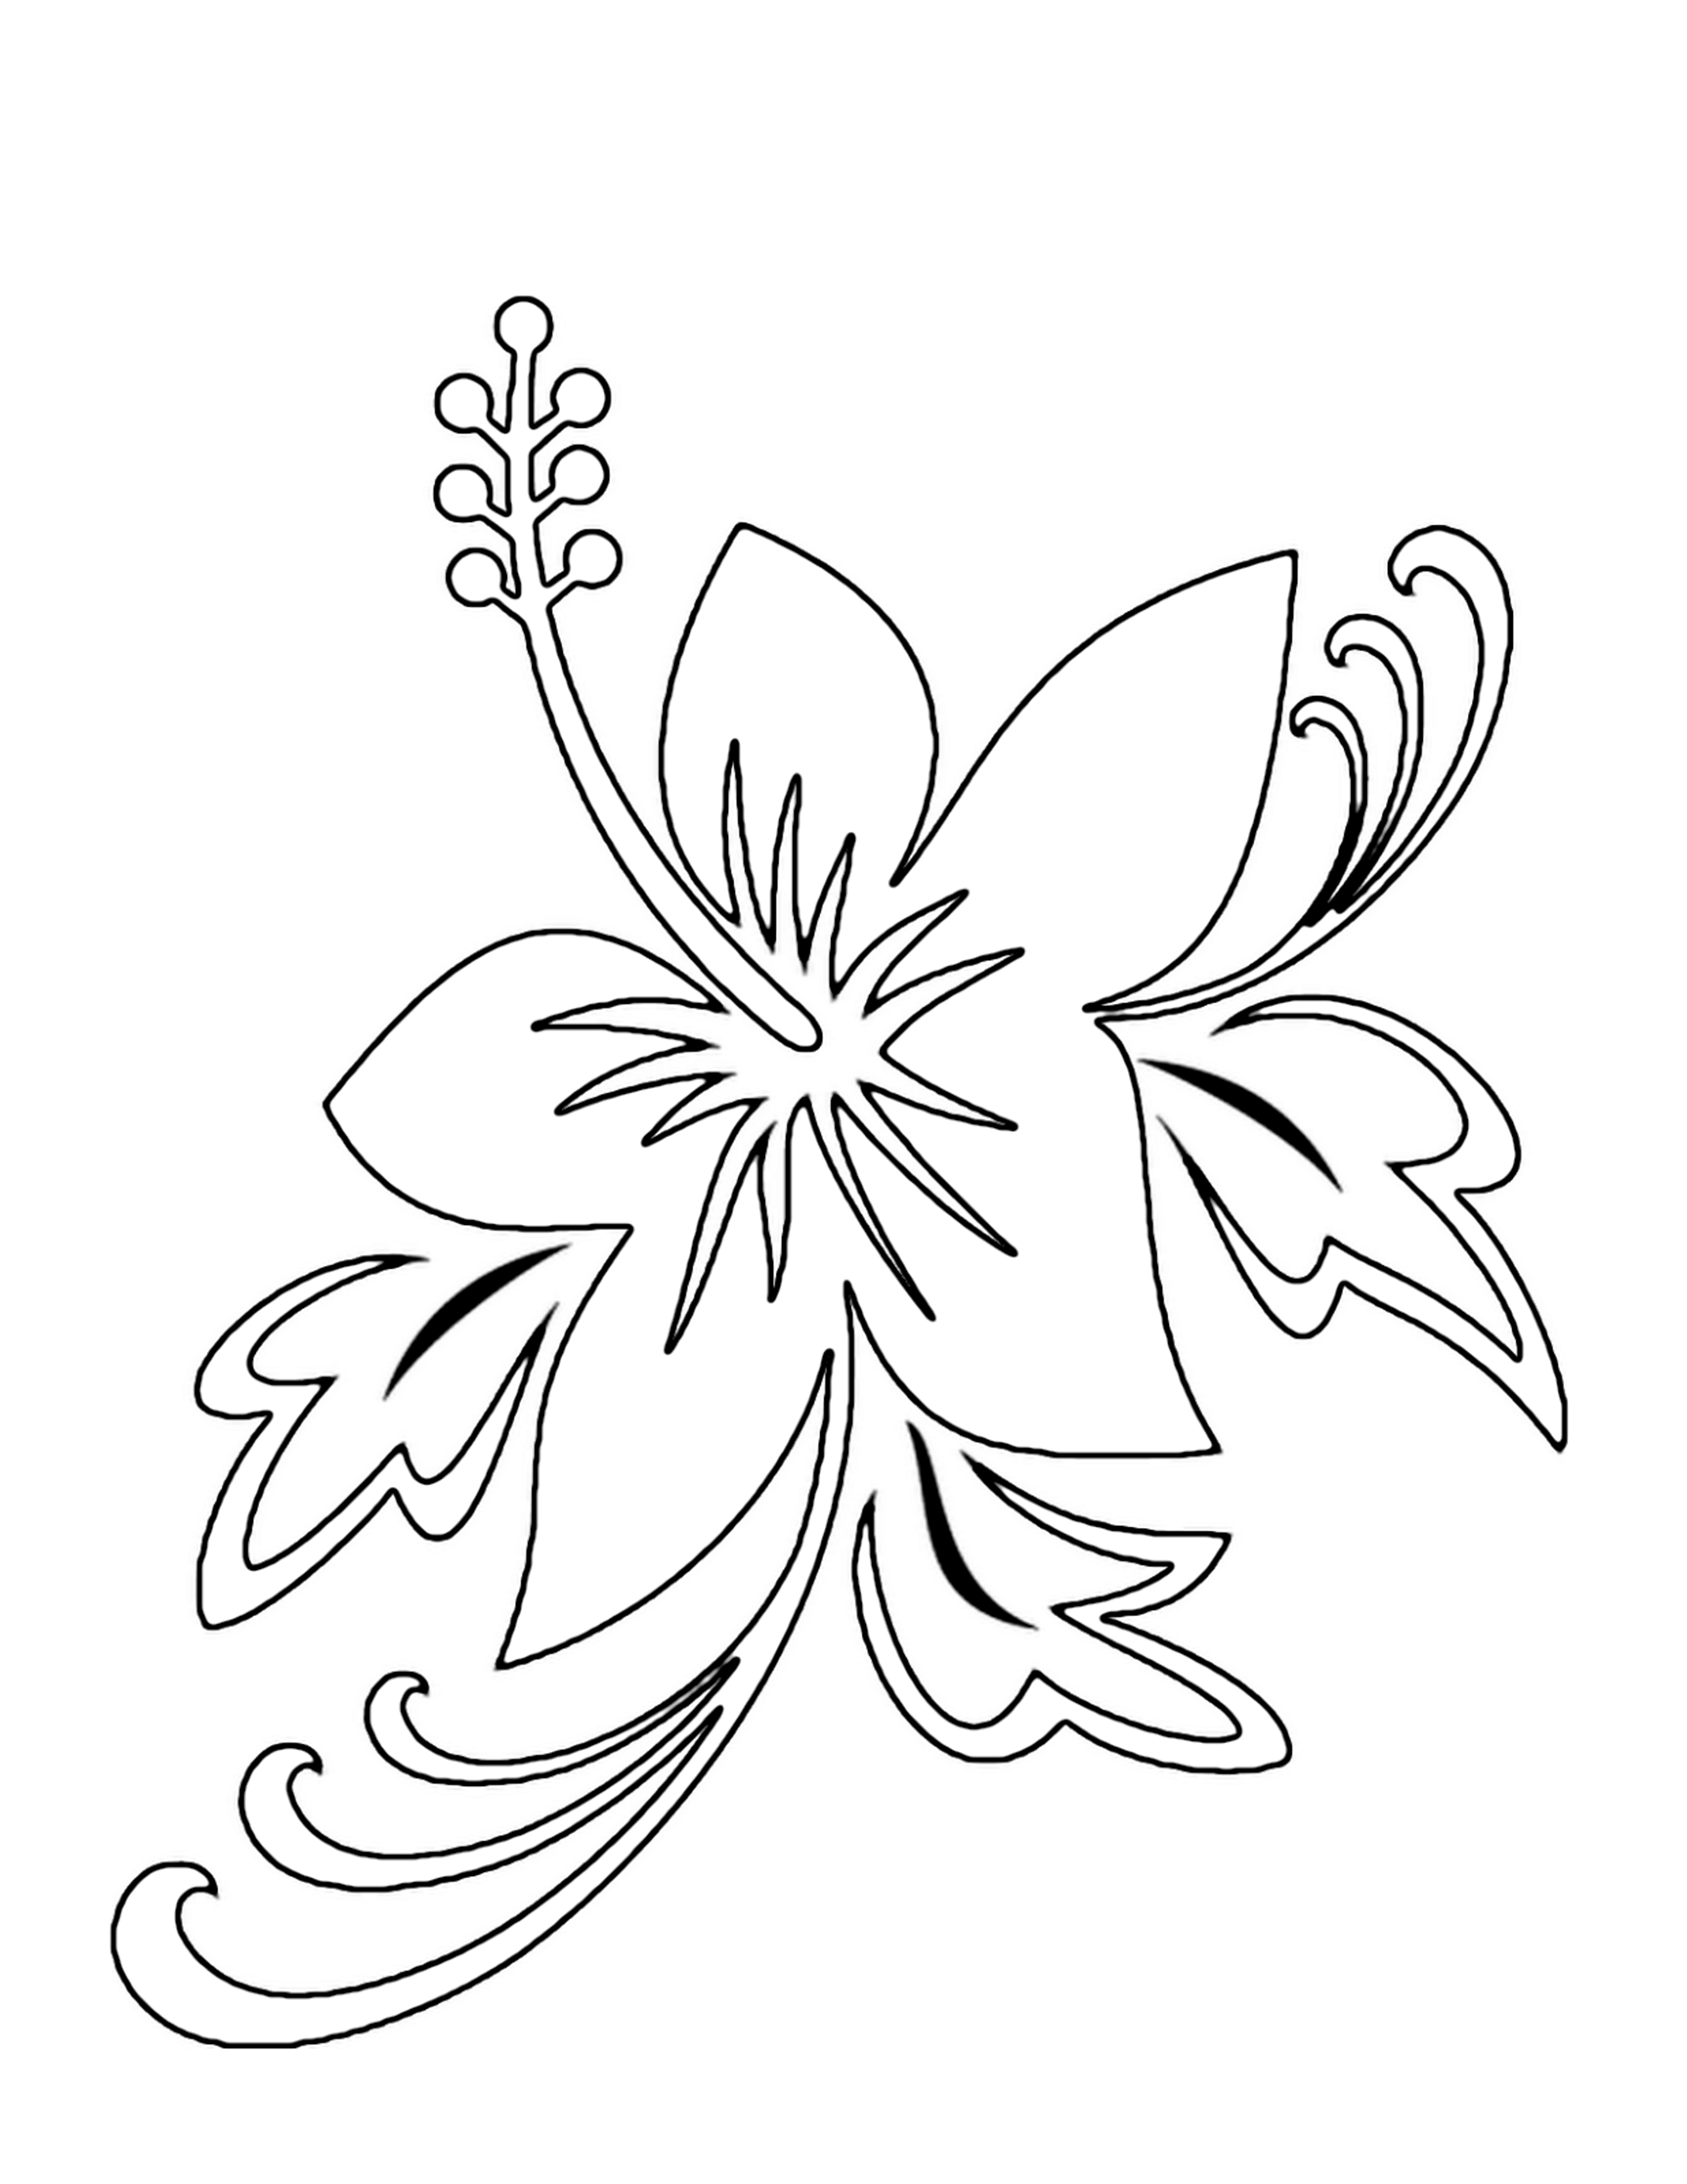 picture of a flower to color coloring pages for kids tulip coloring pages for kids a flower of picture color to